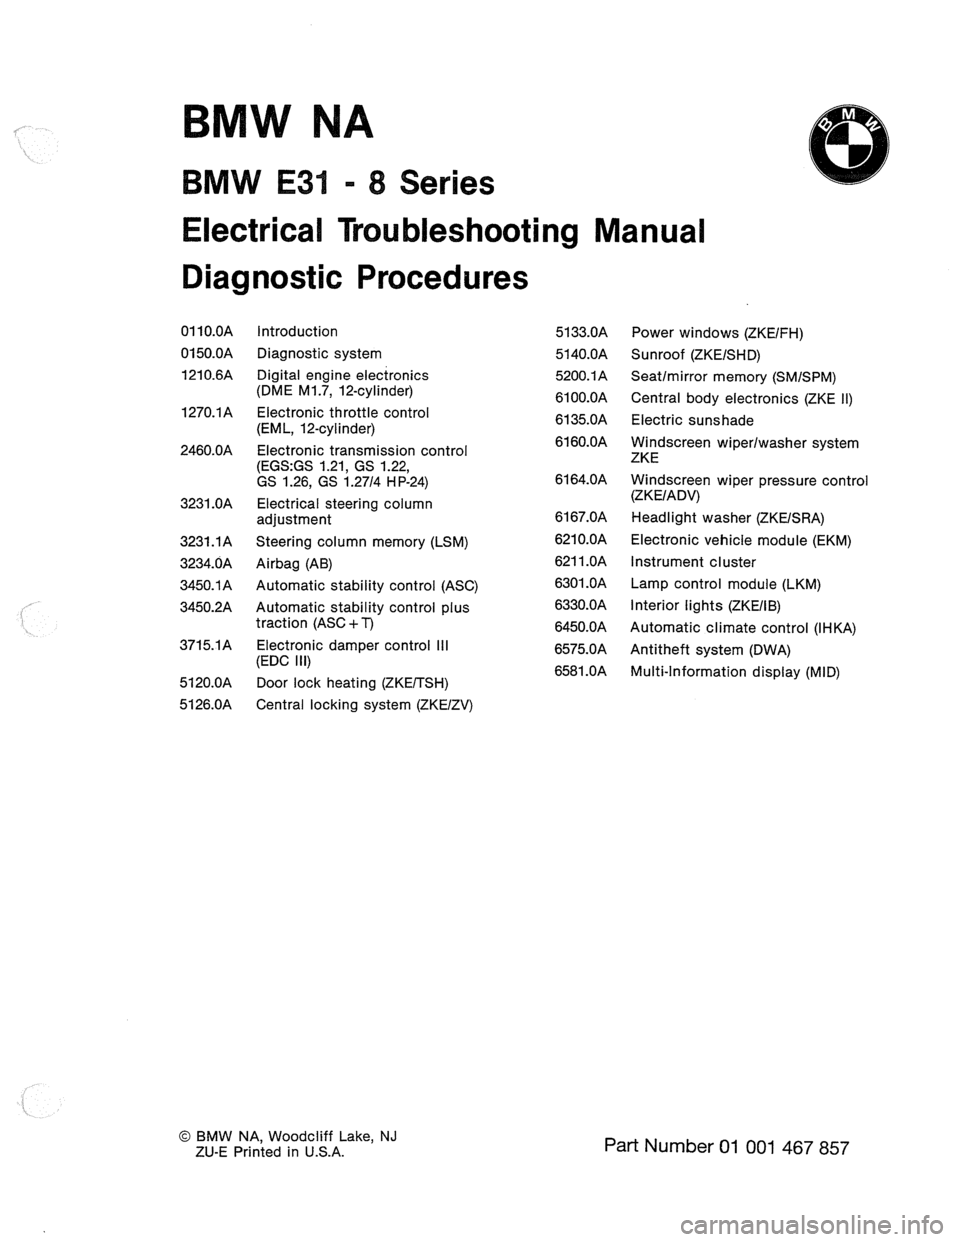 Bmw 850ci 1990 e31 electrical troubleshooting manual sciox Images